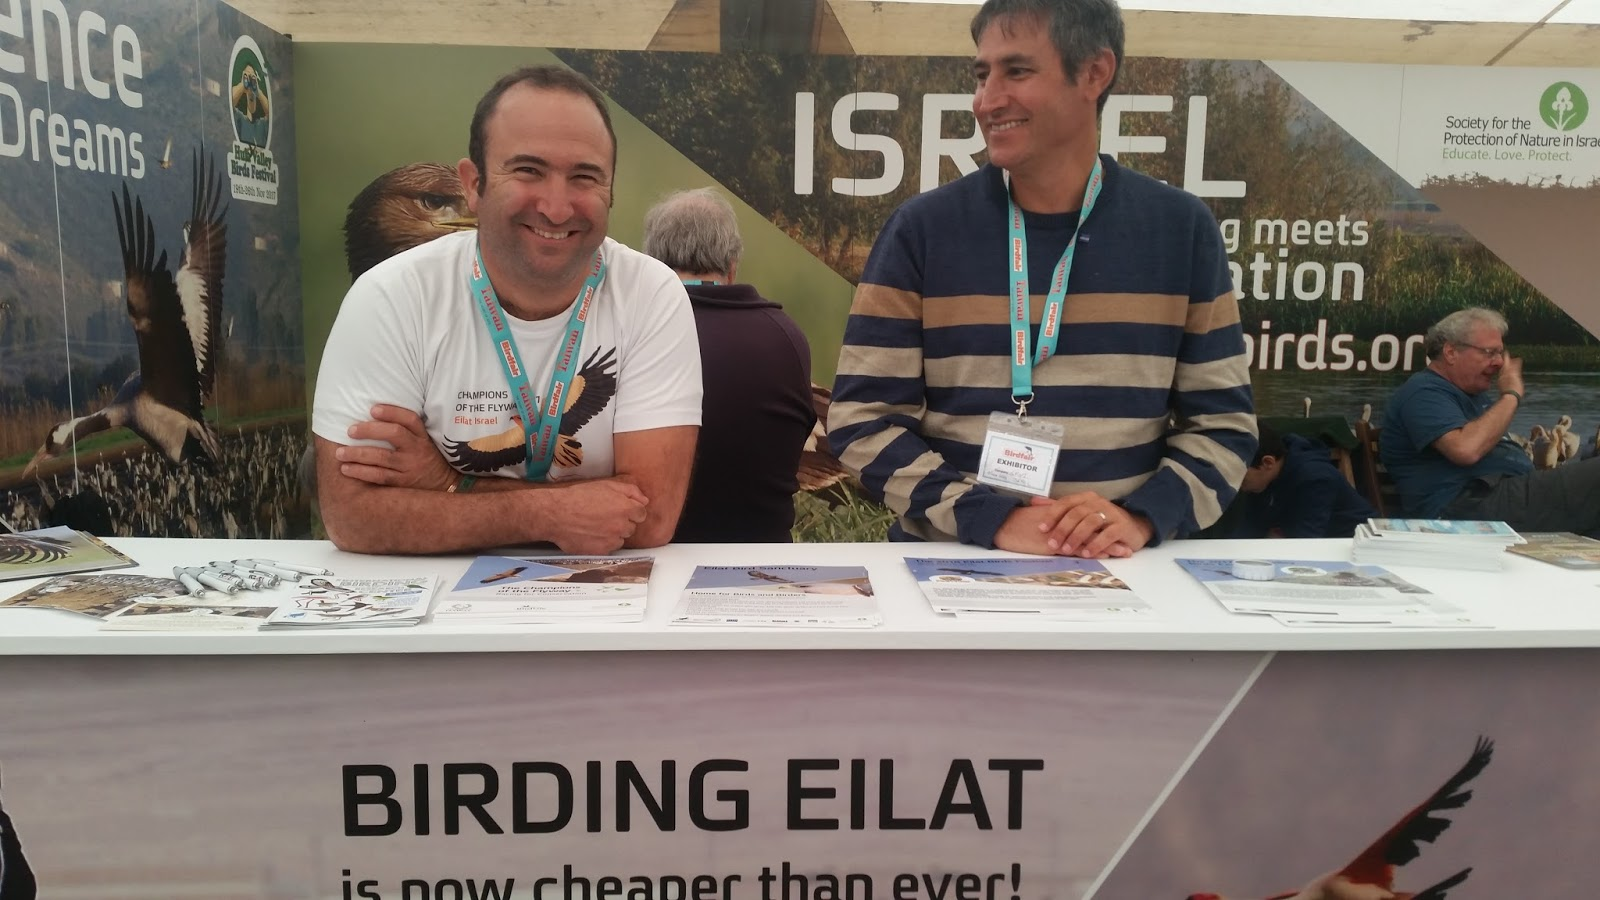 Yoav Perlman - birding, science, conservation, photography